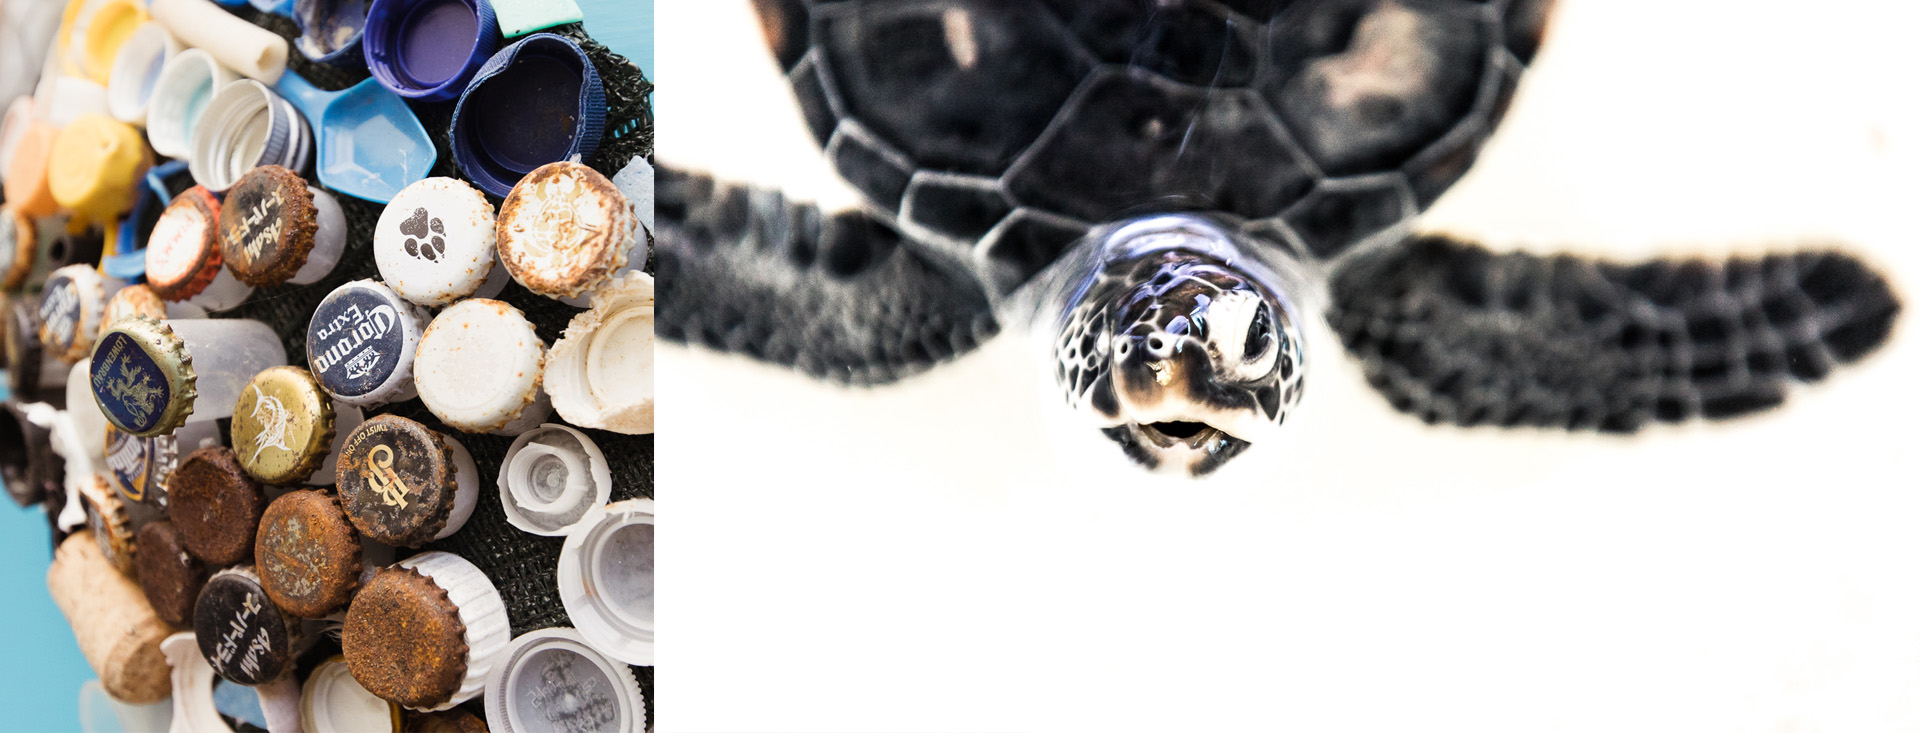 Above is baby Donatello, found in a nest at Cowley Beach he had lost his right eye, likely chewed by ants.